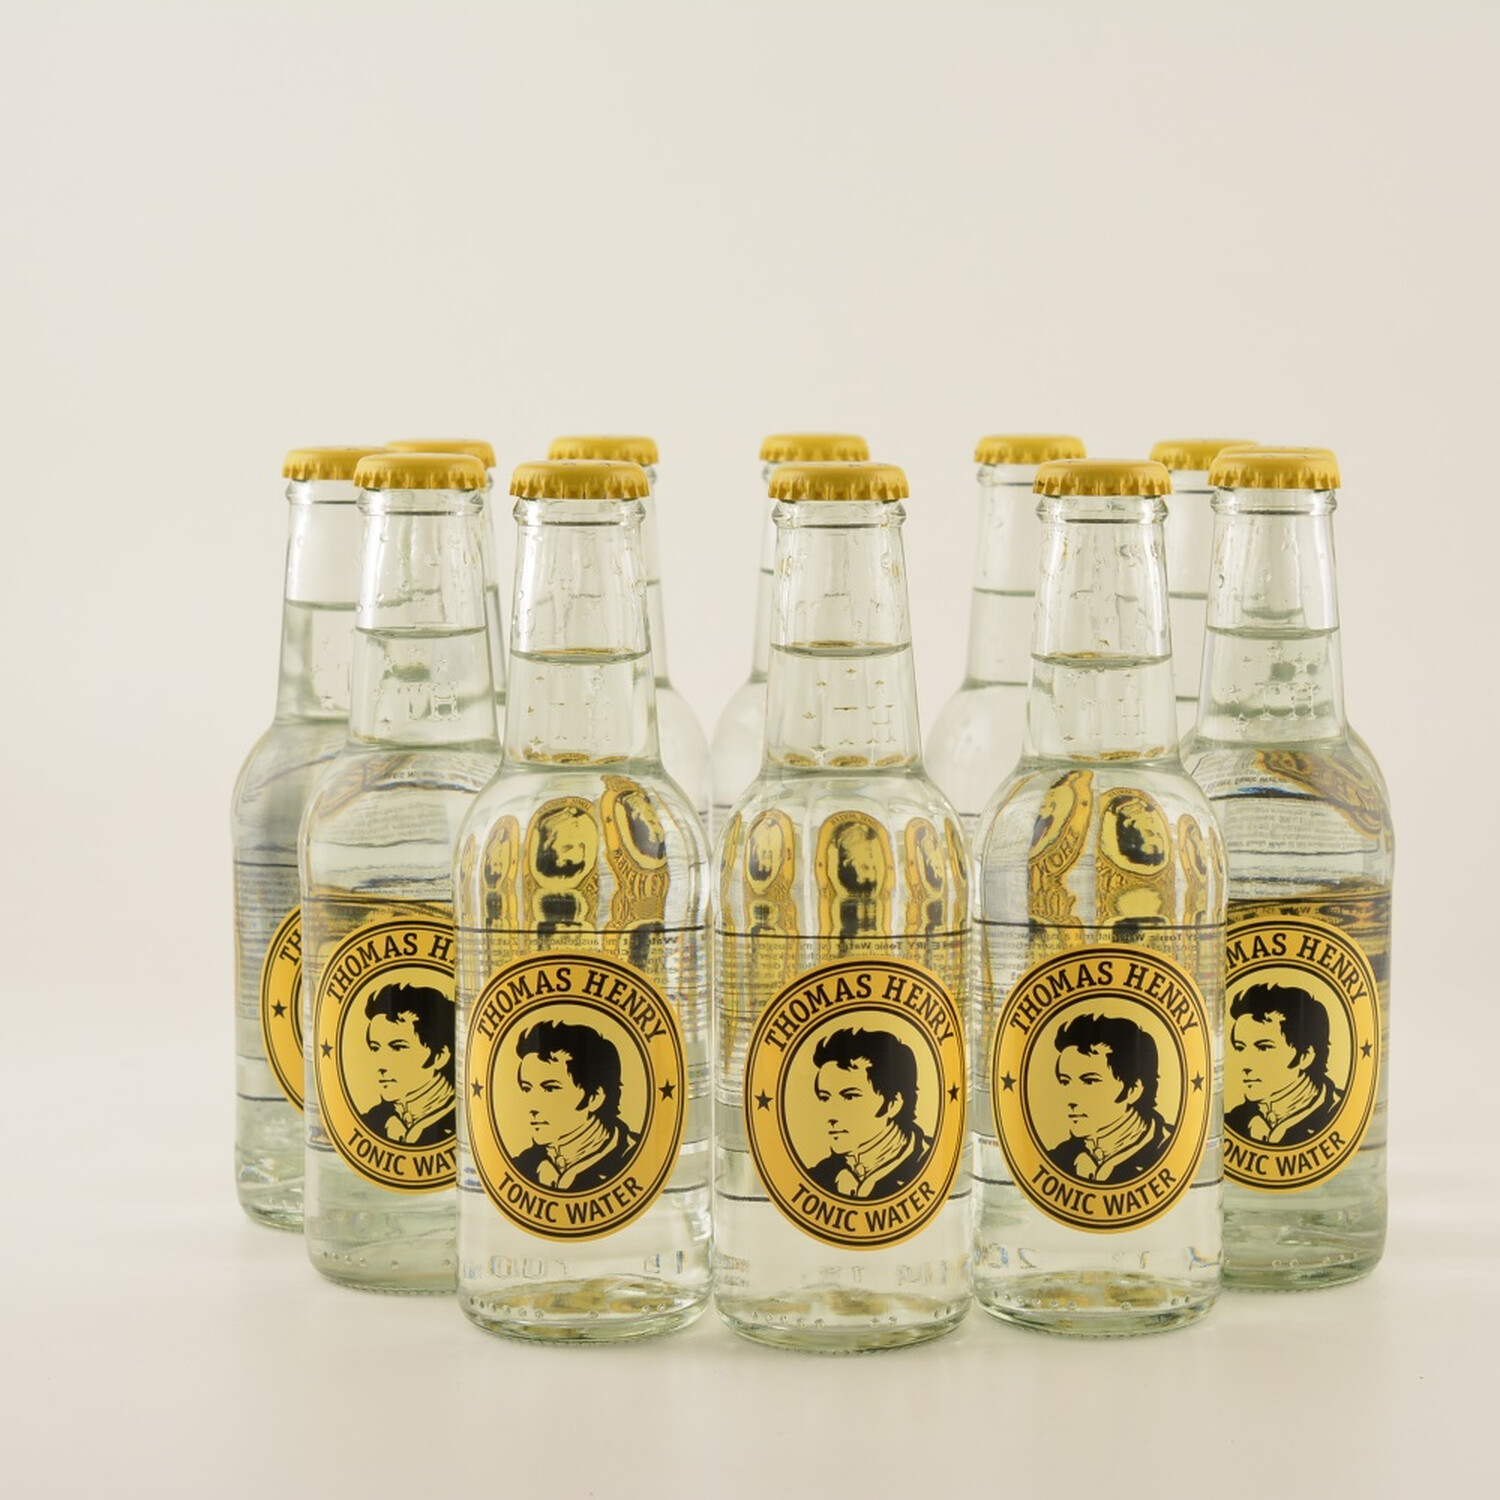 Thomas Henry Tonic Water 12er Pack 12x0,2l, 13,90 €